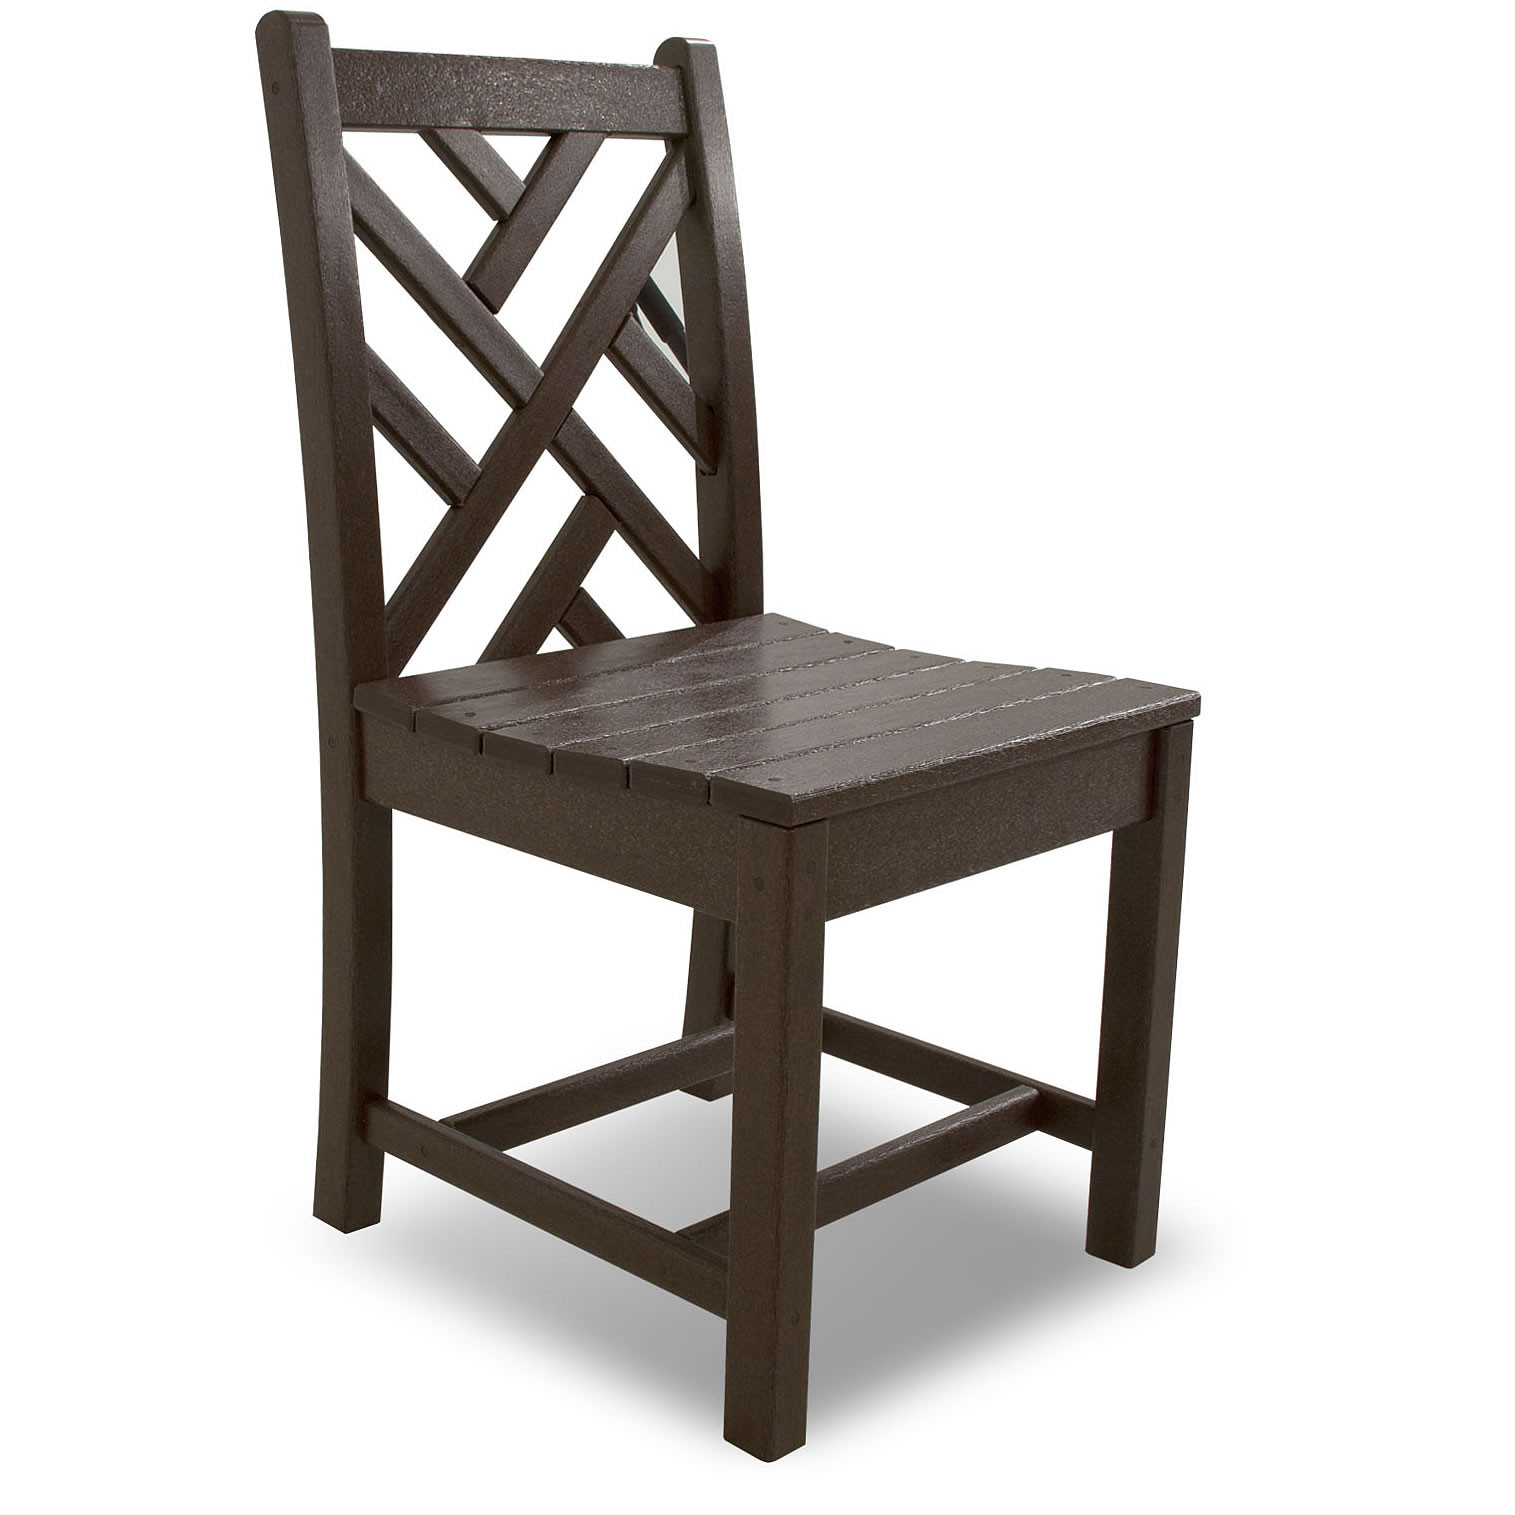 Polywood Chippendale Side Chair Chippendale Collection Polywood Outdoor Furniture Collections